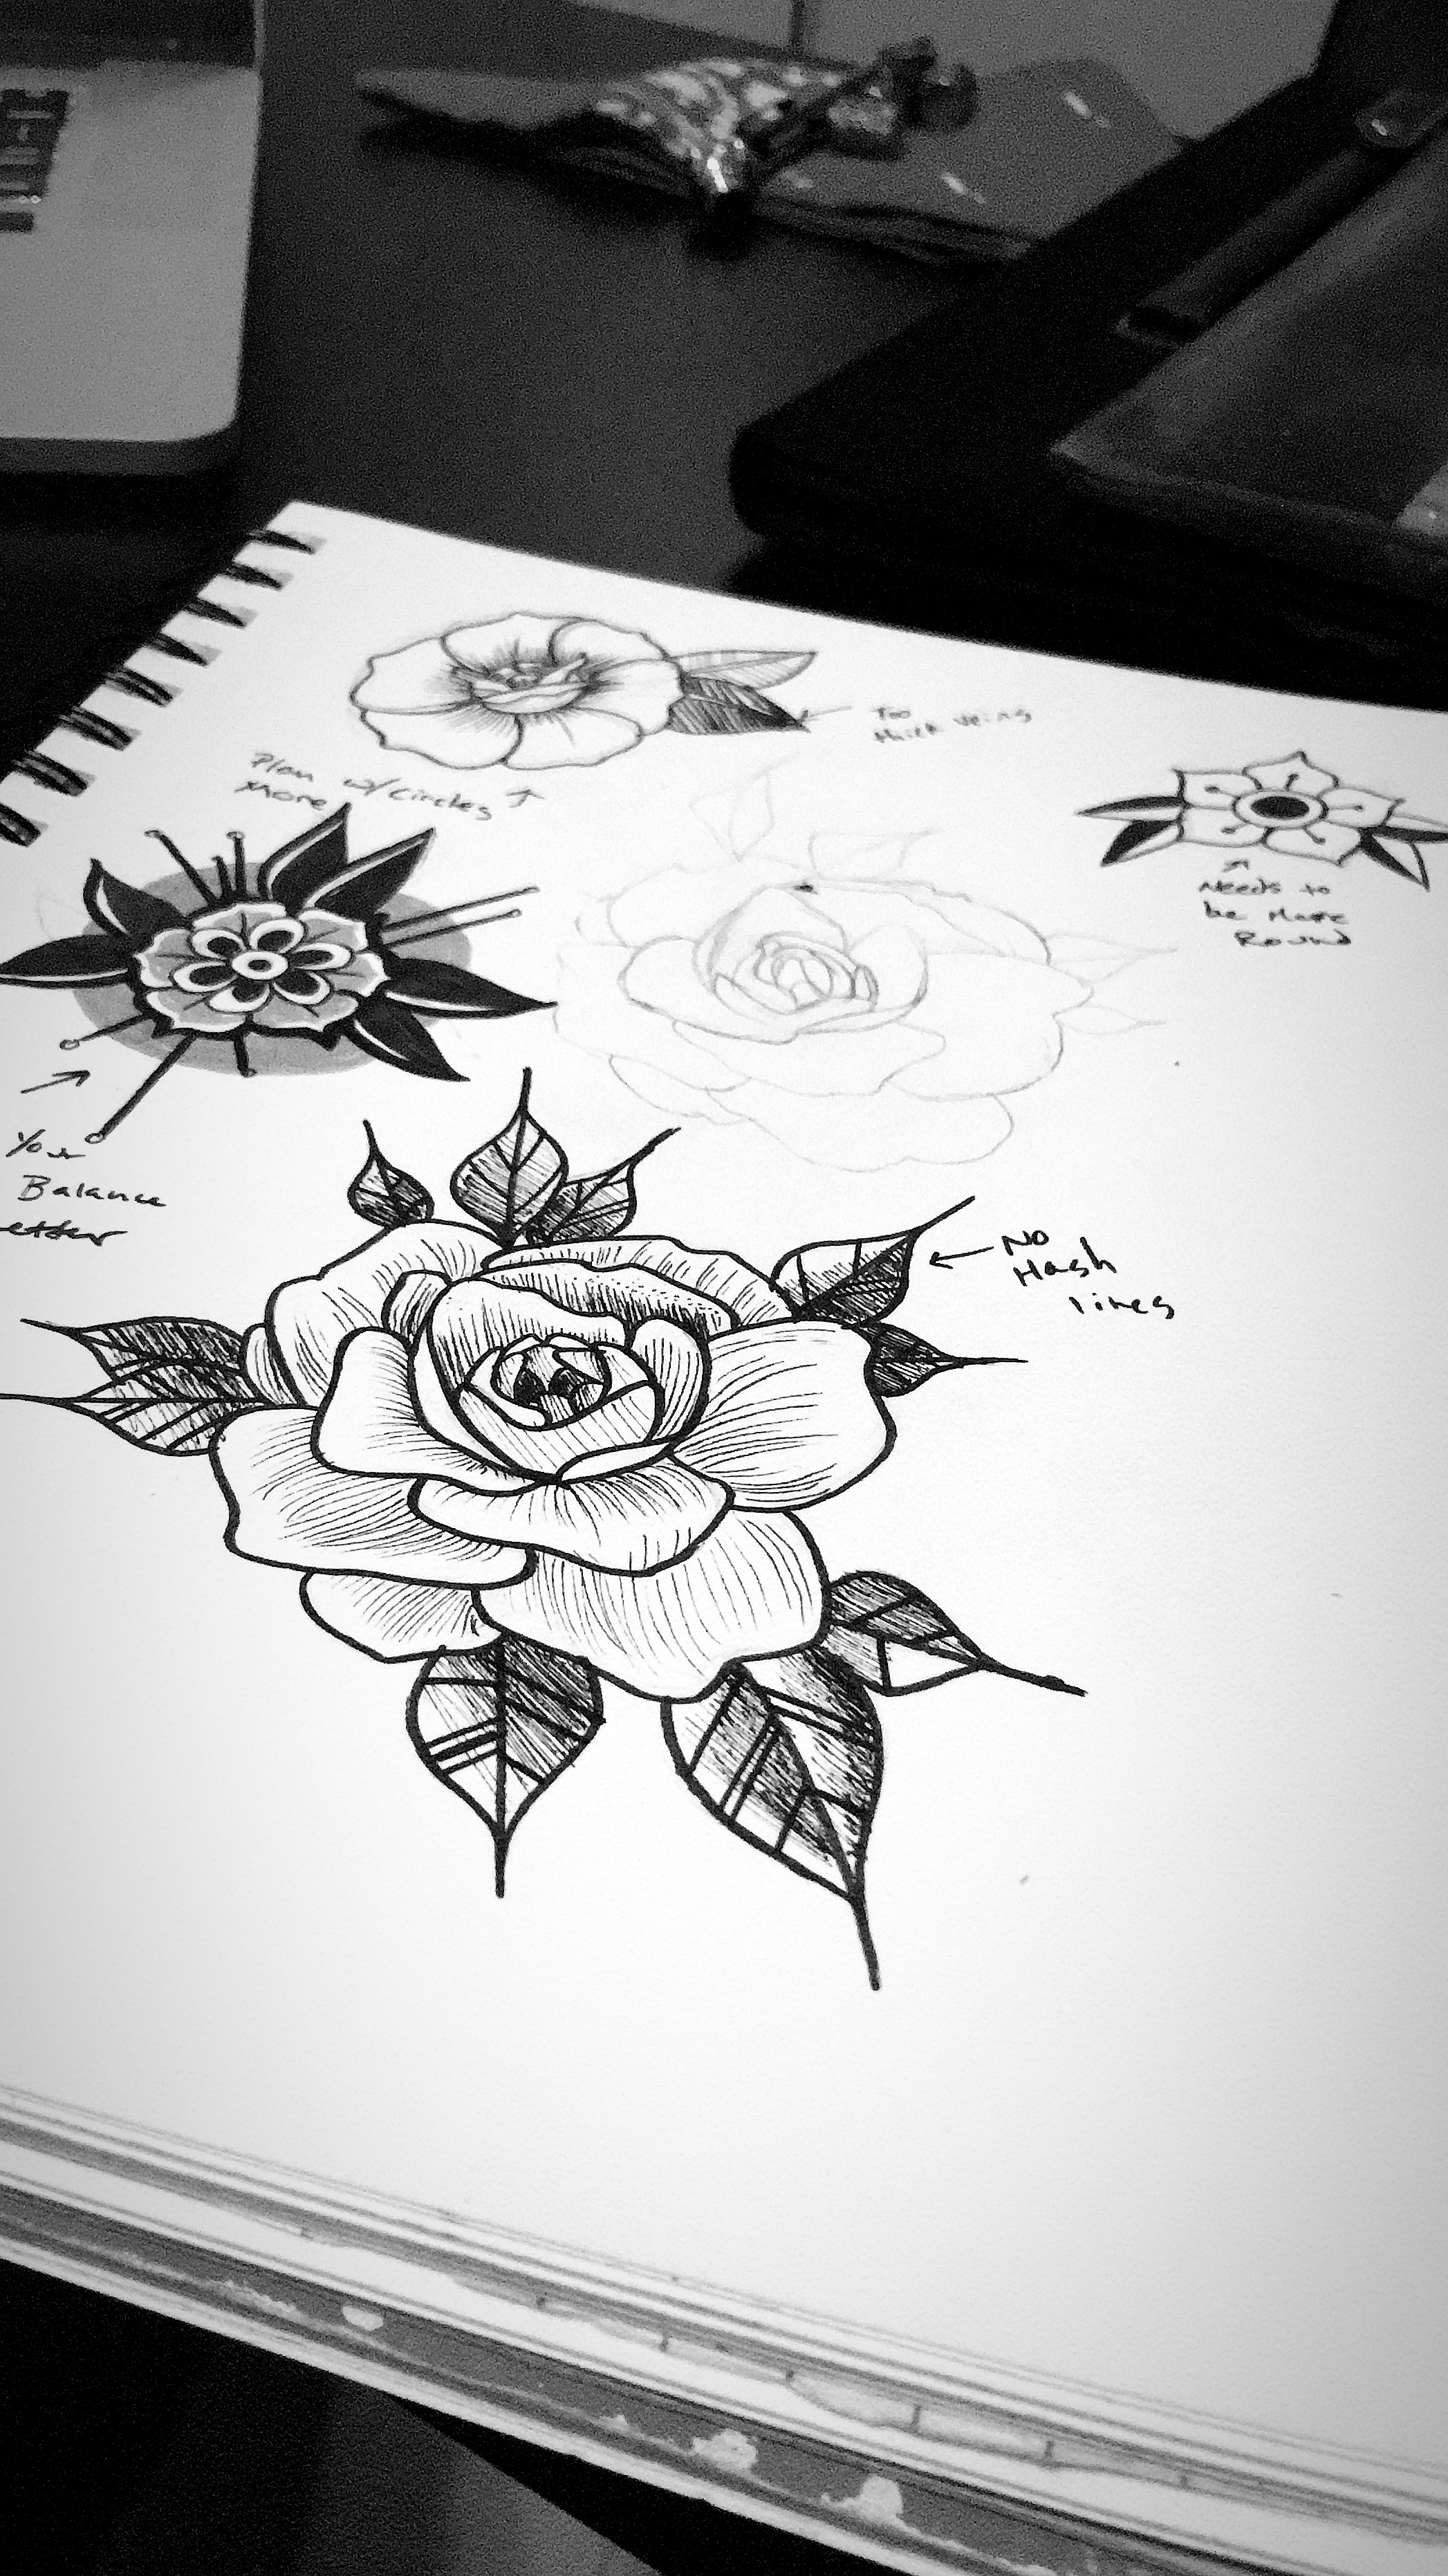 Practicing Tattoo Flash because I want to be a Tattoo Artists one day.